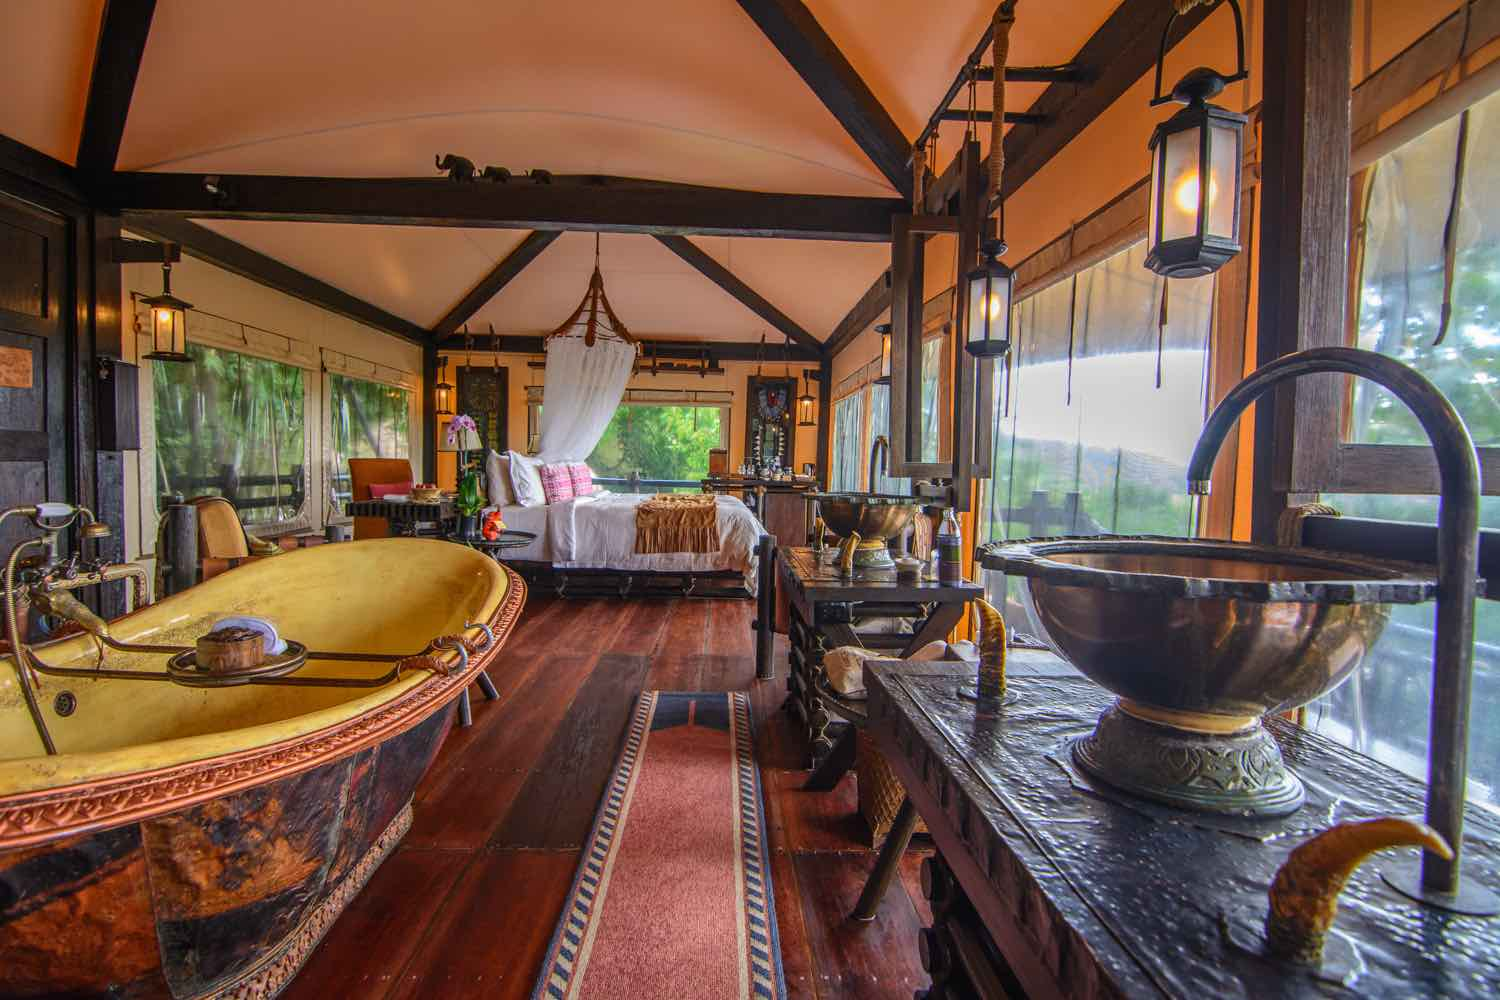 Four Seasons Tented Camp Golden Triangle Interior - AspirantSG